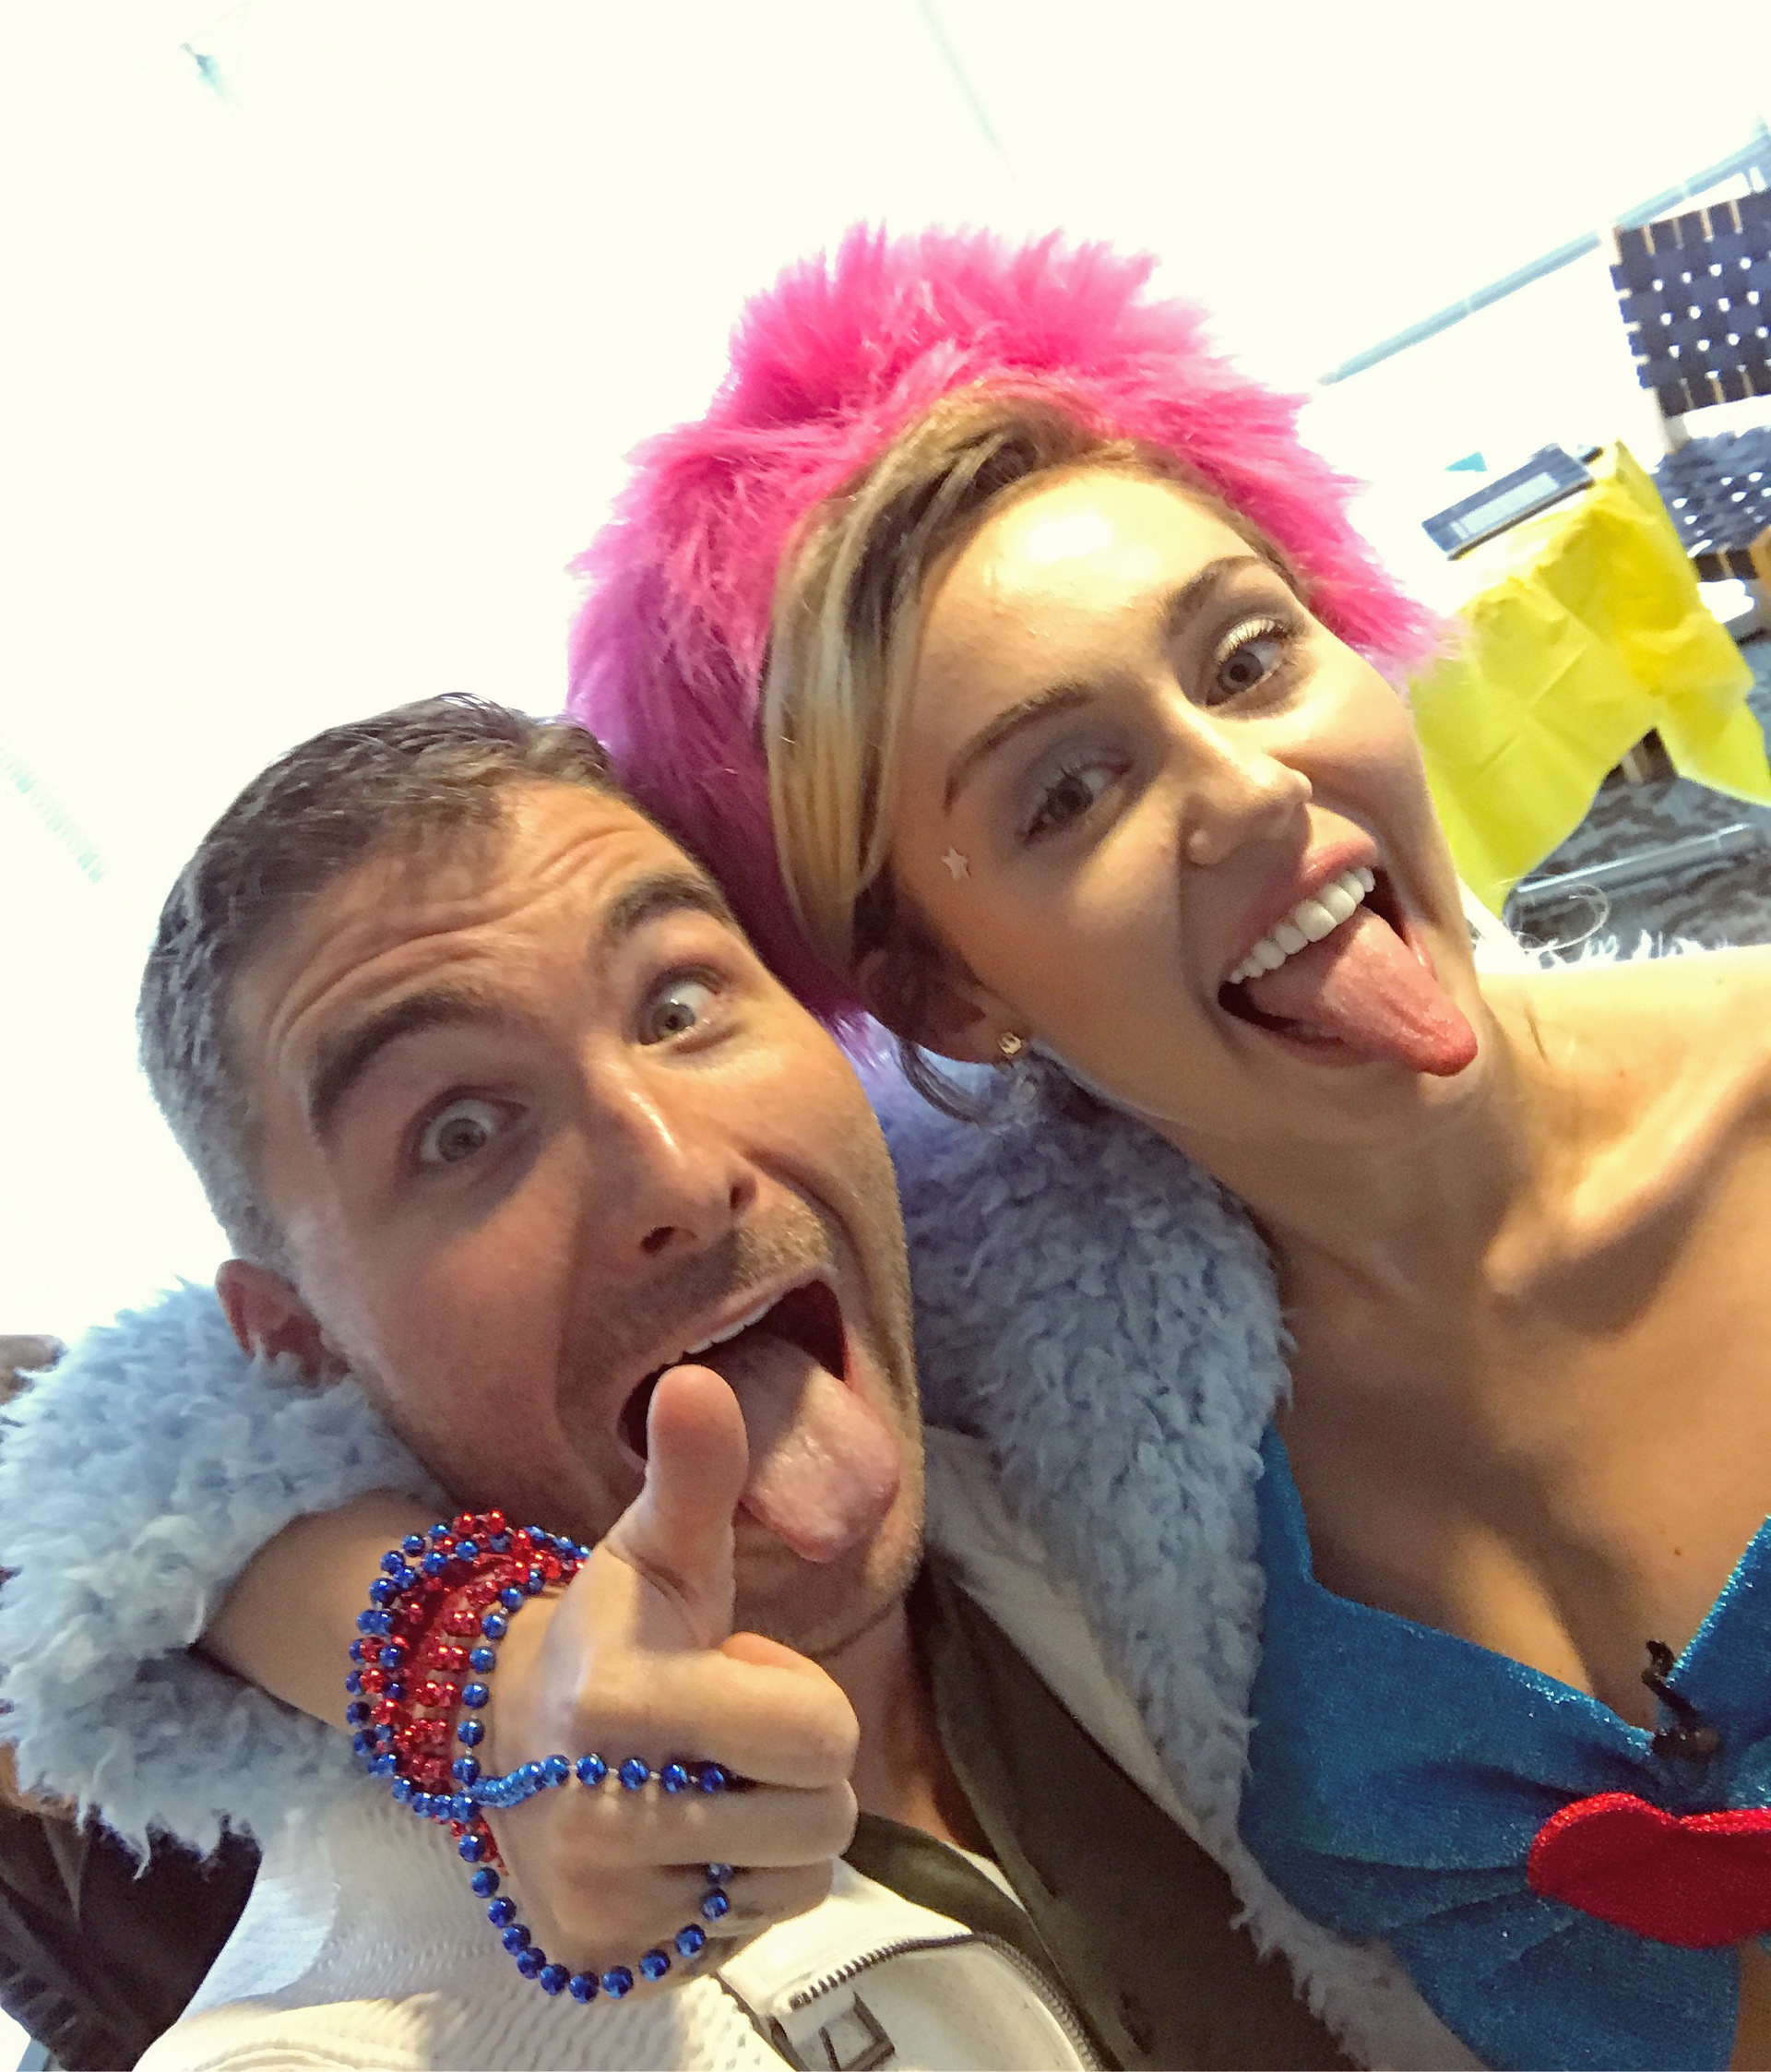 Director-James-Kicklighter-Miley-Cyrus-Selfie